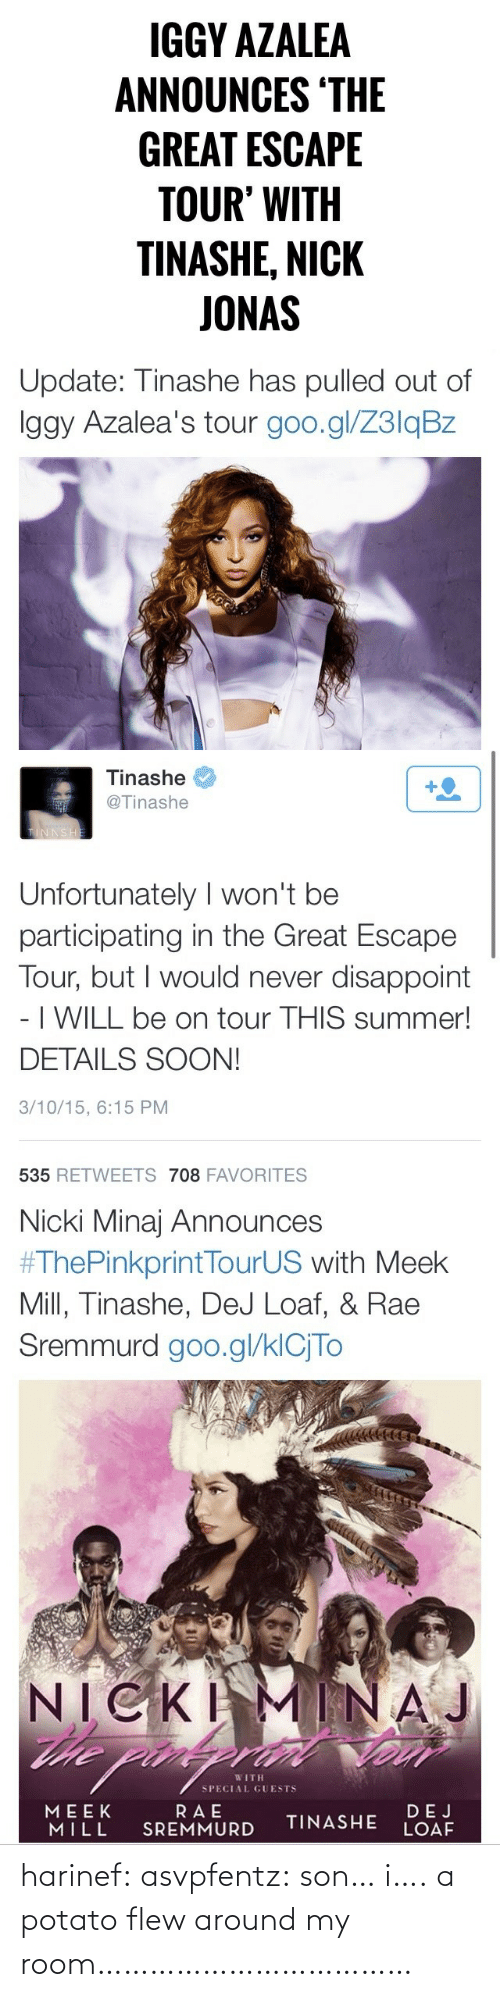 dej: IGGY AZALEA  ANNOUNCES 'THE  GREAT ESCAPE  TOUR' WITH  TINASHE, NICK  JONAS   Update: Tinashe has pulled out of  Iggy Azalea's tour goo.gl/Z3lqBz   Tinashe  +2  @Tinashe  TINNSHE  Unfortunately I won't be  participating in the Great Escape  Tour, but I would never disappoint  - I WILL be on tour THIS summer!  DETAILS SOON!  3/10/15, 6:15 PM  535 RETWEETS 708 FAVORITES   Nicki Minaj Announces  #ThePinkprintTourUS with Meek  Mill, Tinashe, DeJ Loaf, & Rae  Sremmurd goo.gl/klCjTo  NICKI  he pin  MINAJ  WITH  SPECIAL GUESTS  RAE  SREMMURD  MEEK  MILL  DEJ  LOAF  TINASHE harinef:  asvpfentz:  son… i….  a potato flew around my room………………………………